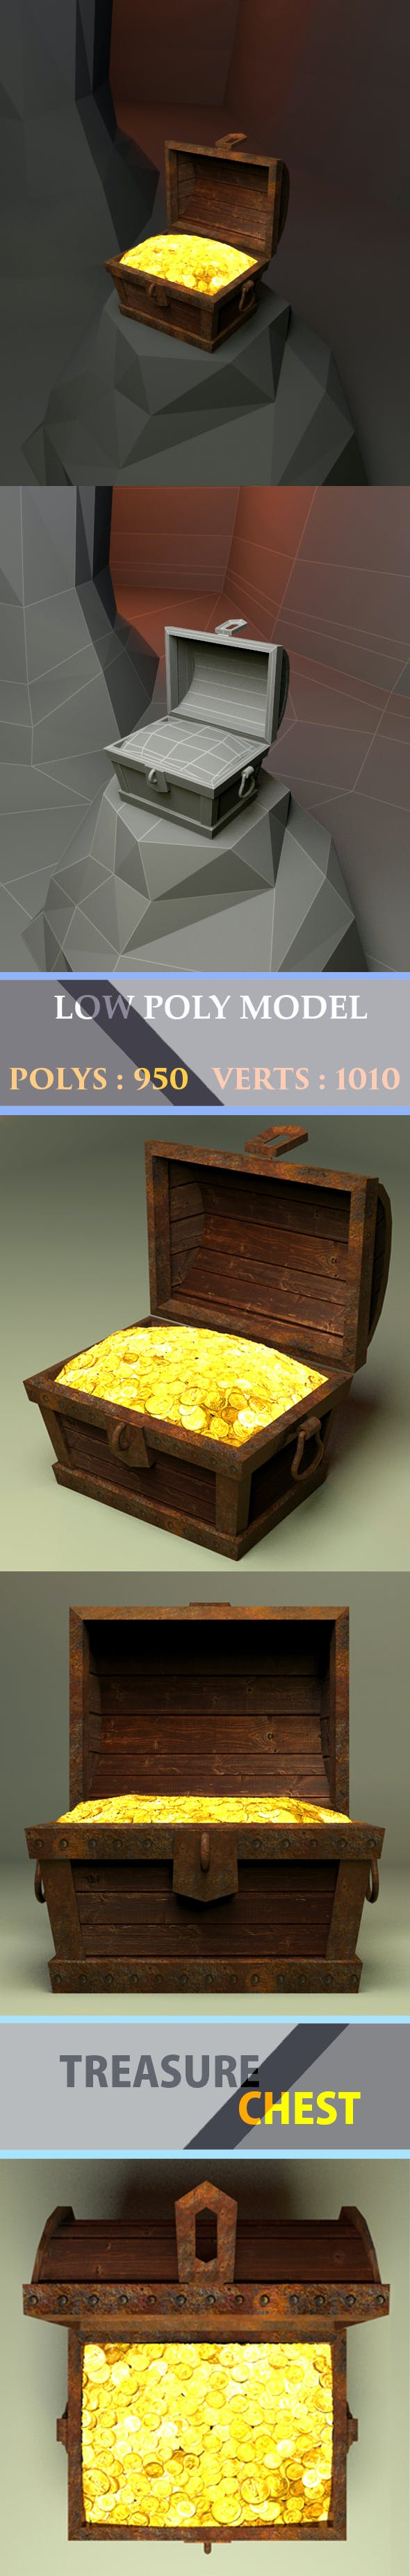 Treasure chest Low Poly - 3DOcean Item for Sale